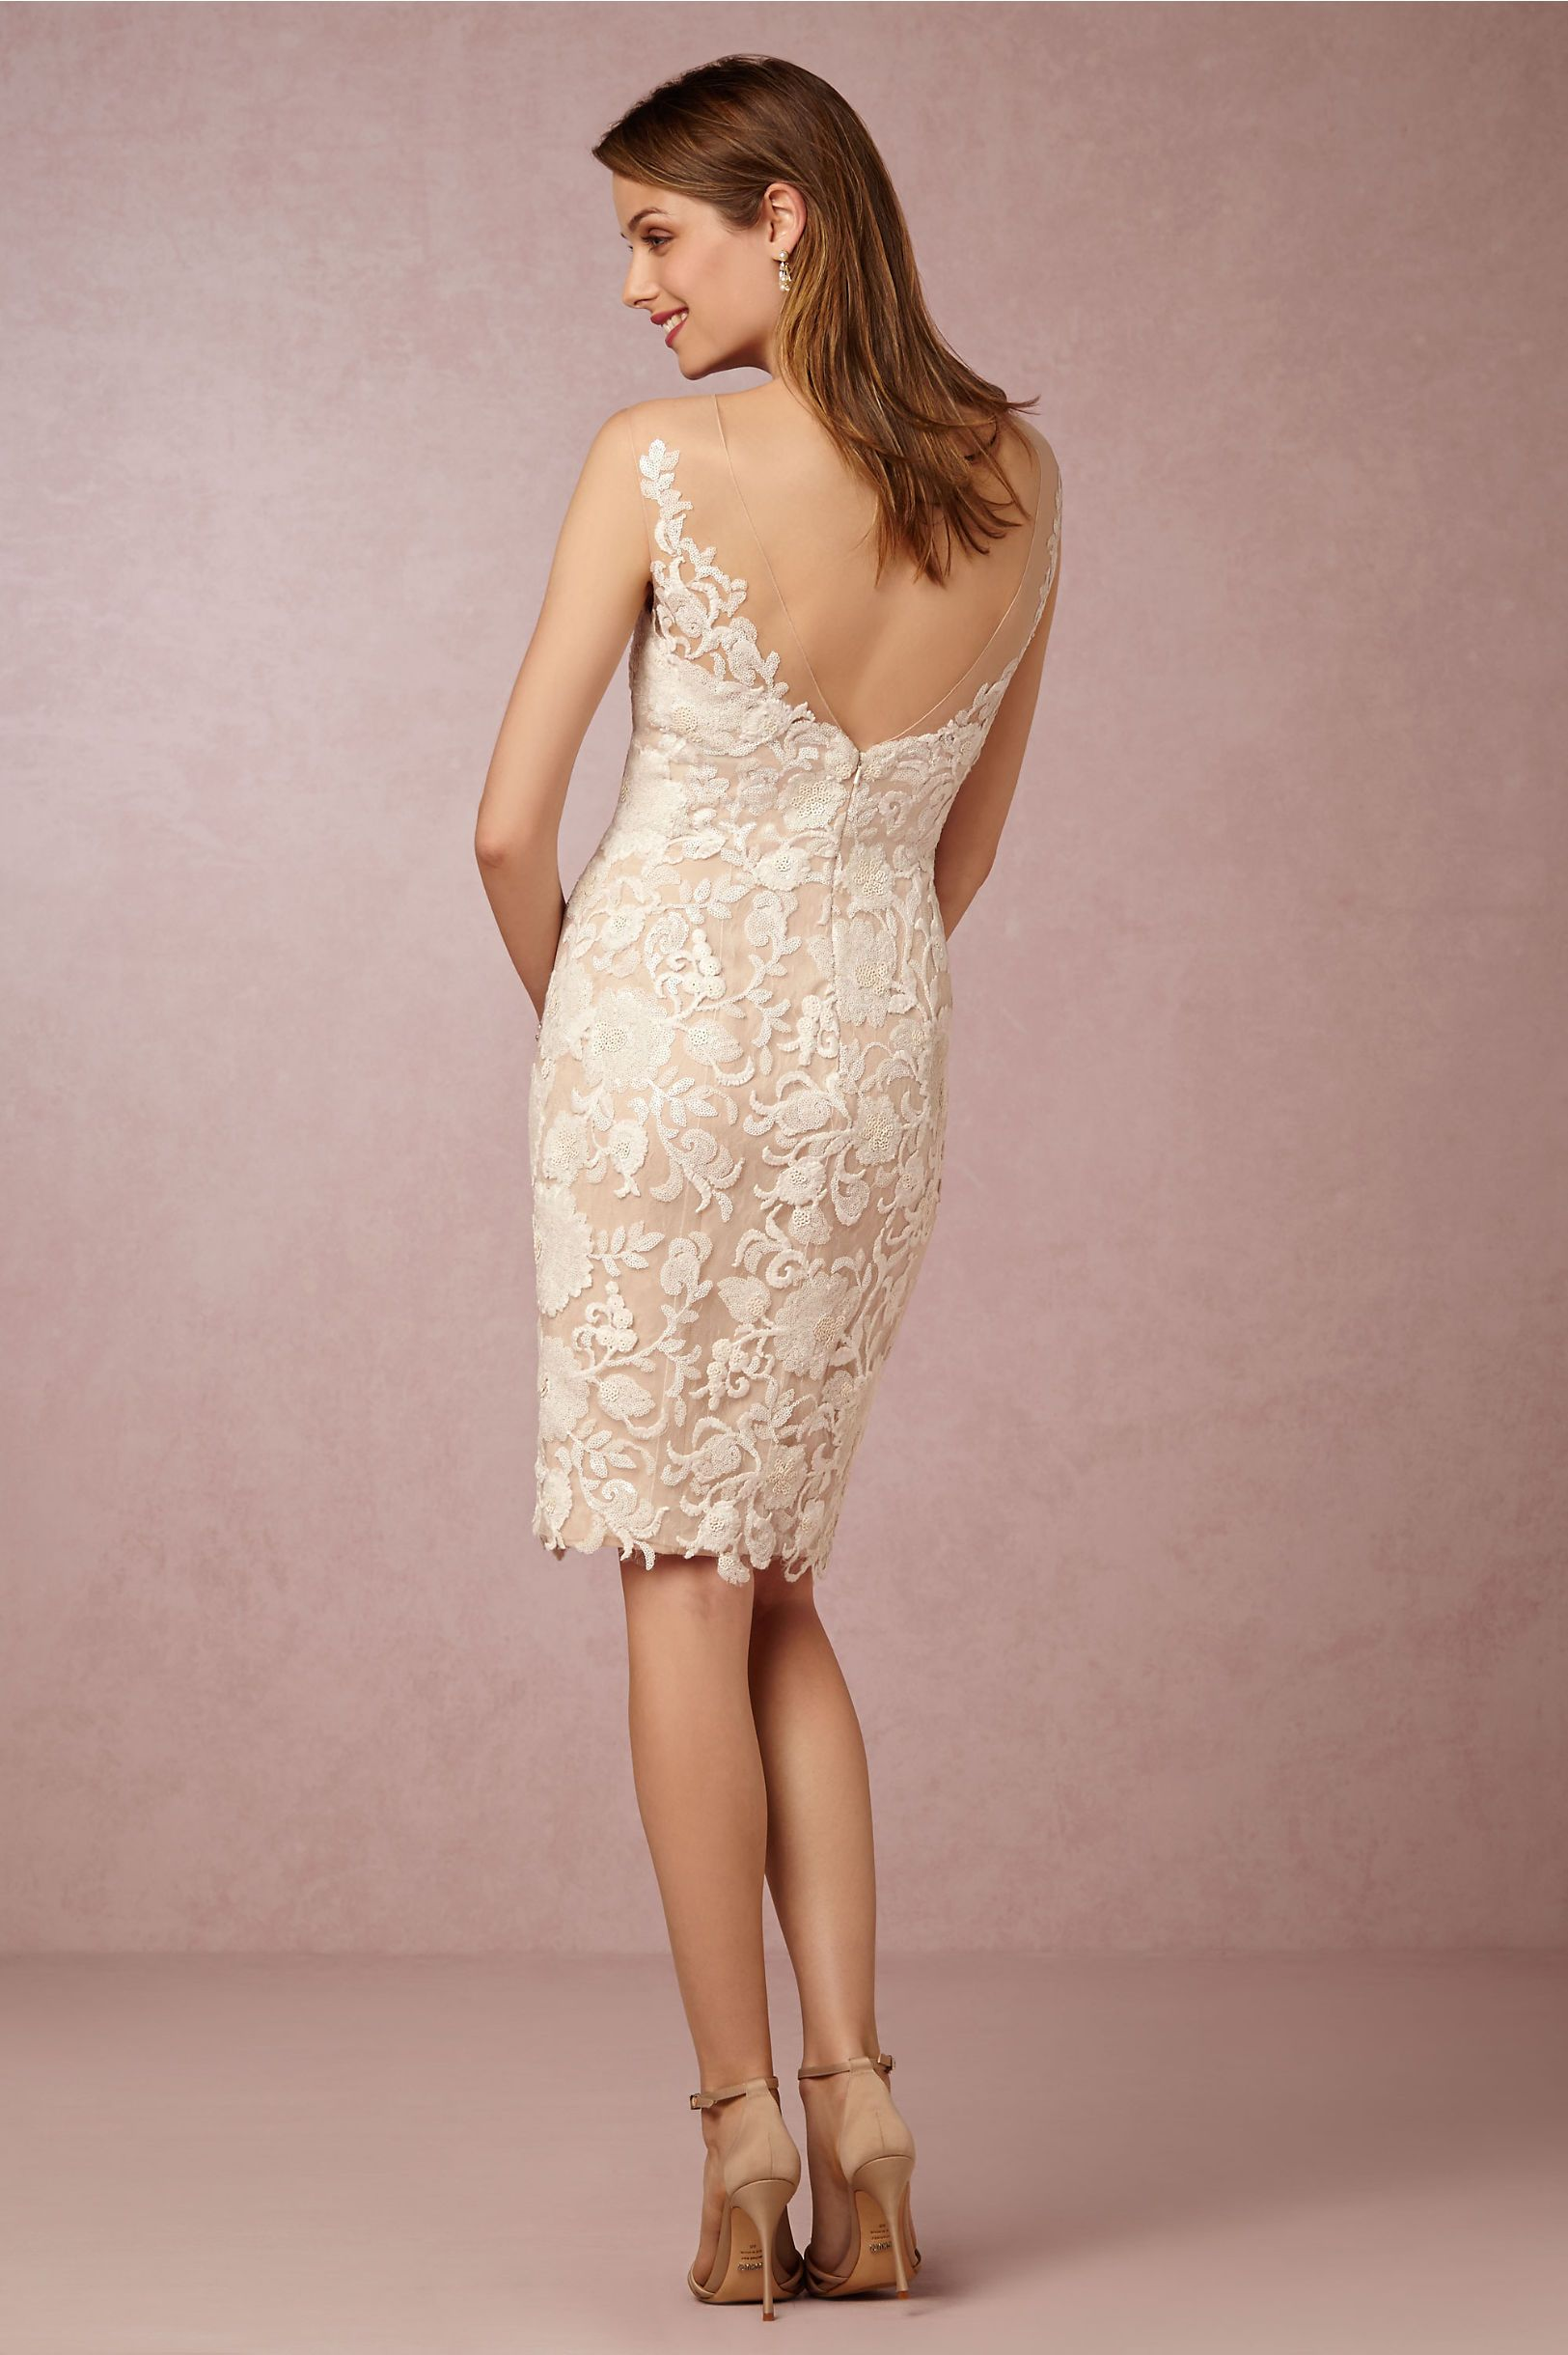 BHLDN Renata Sheath in Bride Reception Dresses at BHLDN | weddings ...